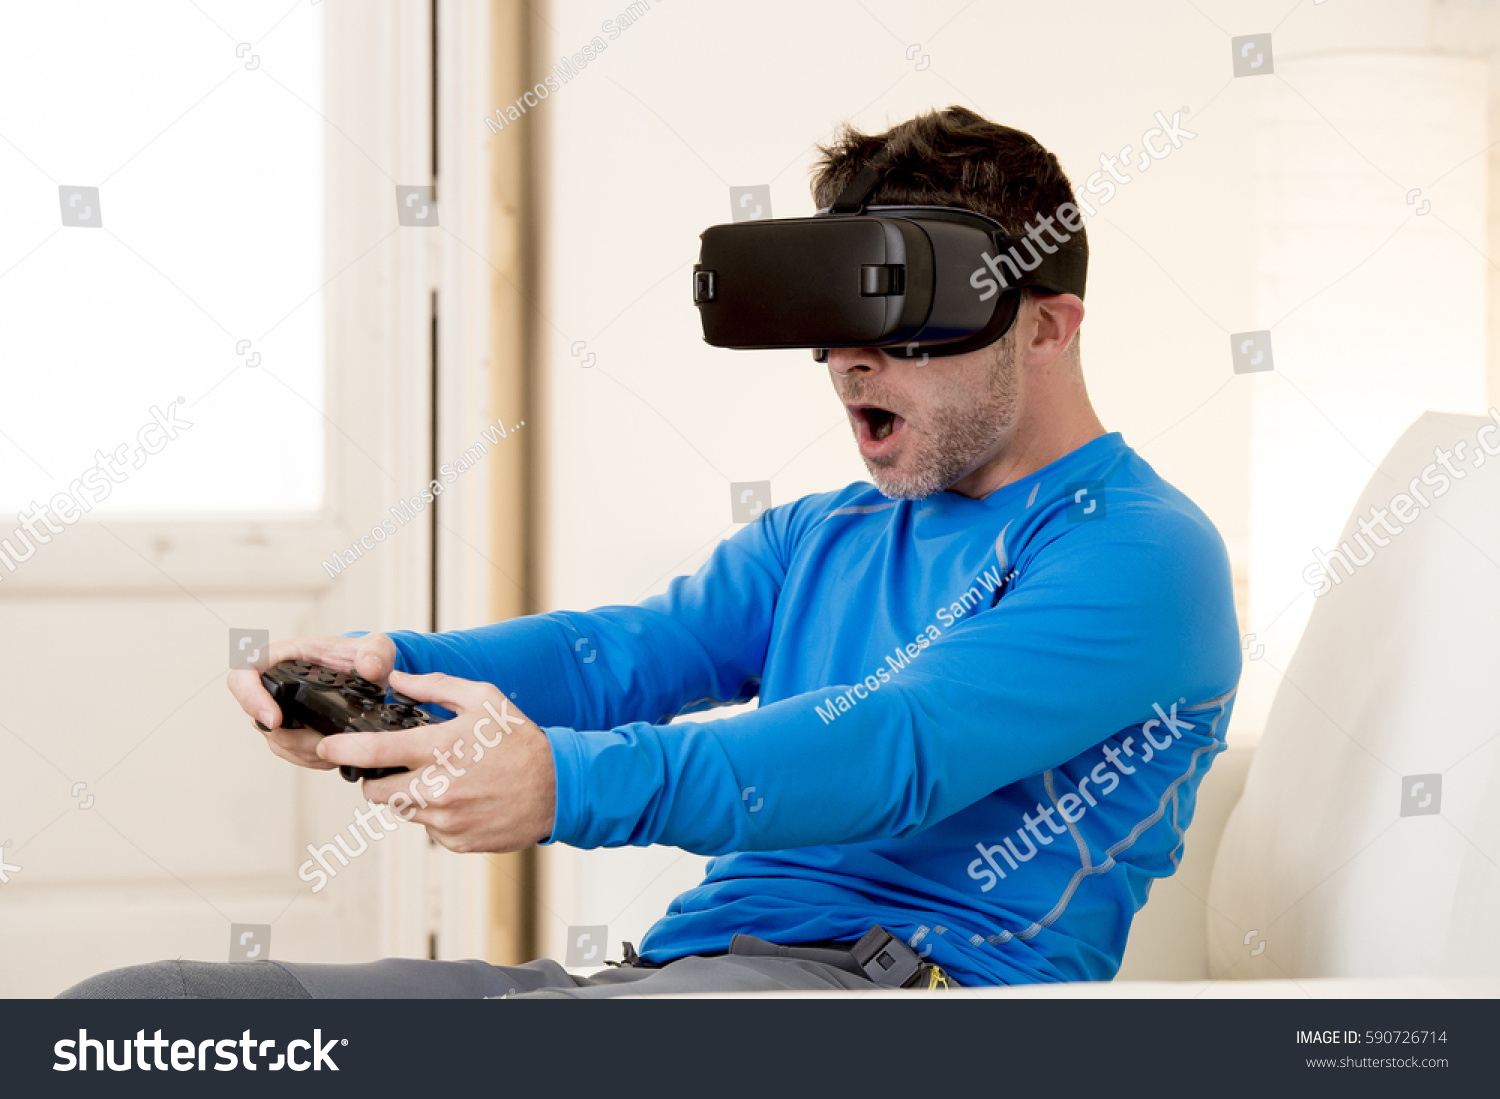 f24bdb709aa young modern man at home living room sofa couch playing video game excited  using 3d goggles watching 360 virtual reality vision enjoying the fun cyber  ...